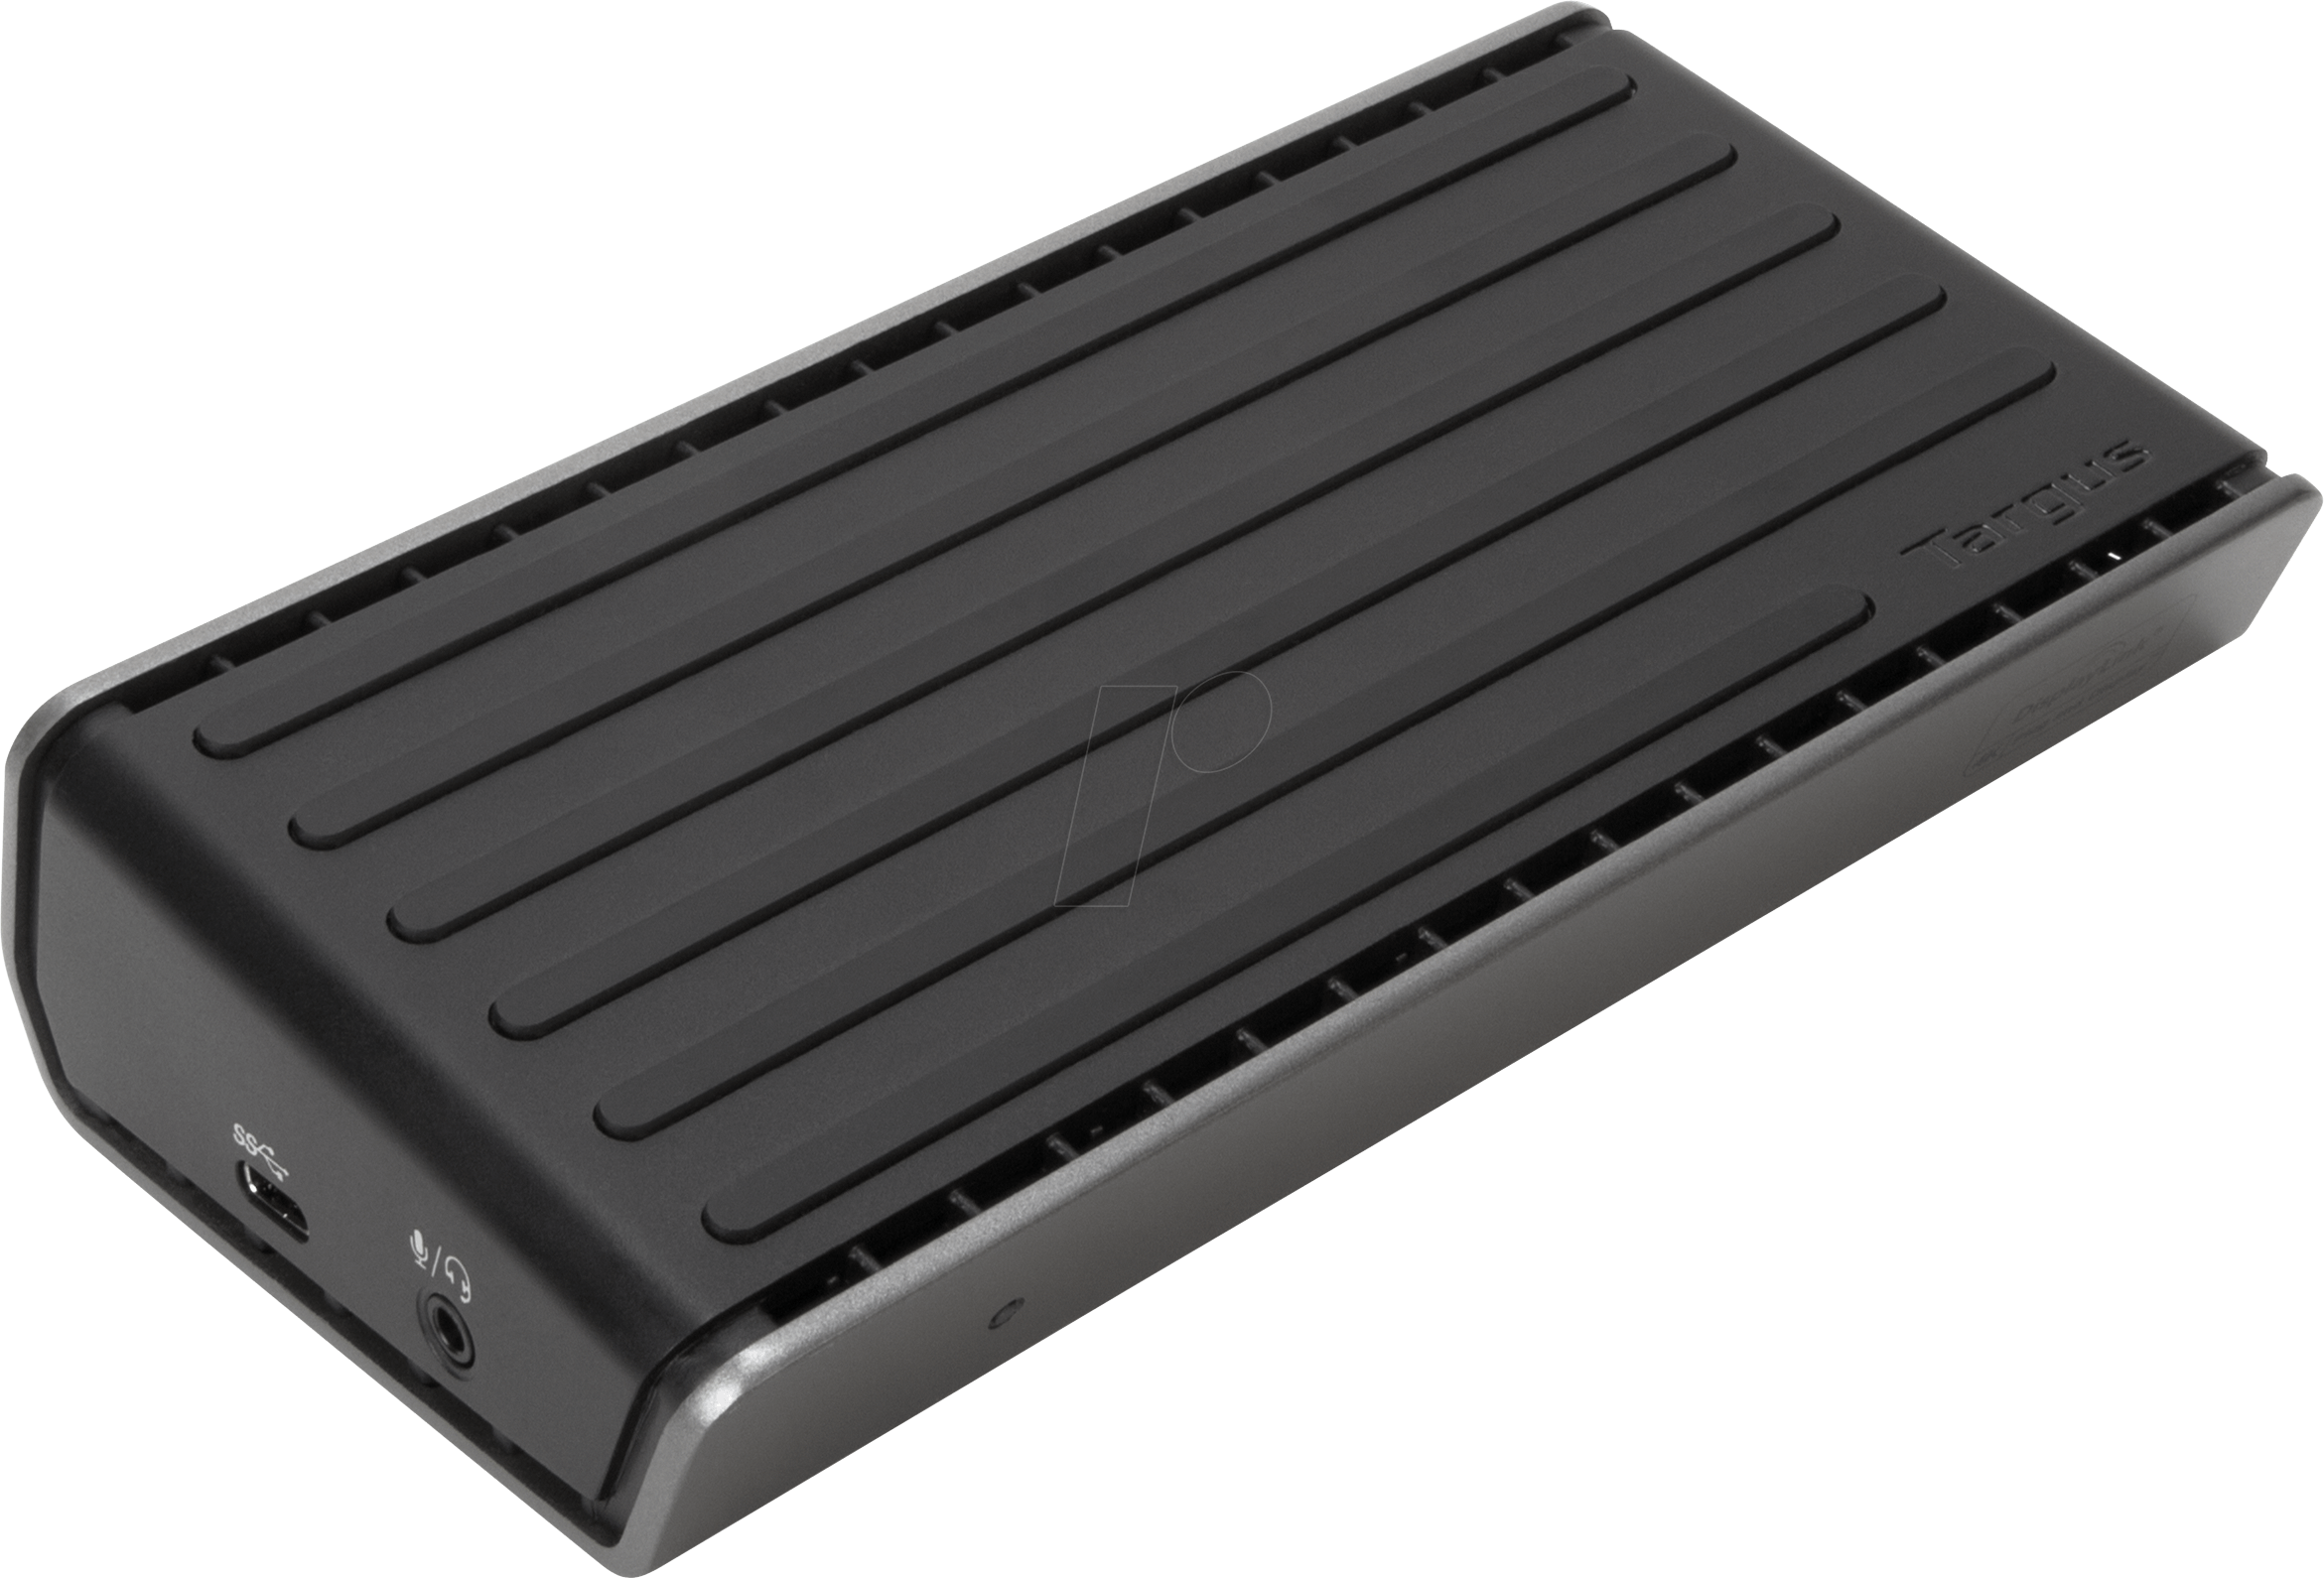 TARGUS DOCK180 - Dockingstation/ Port Replicator, USB 3 0, Laptop